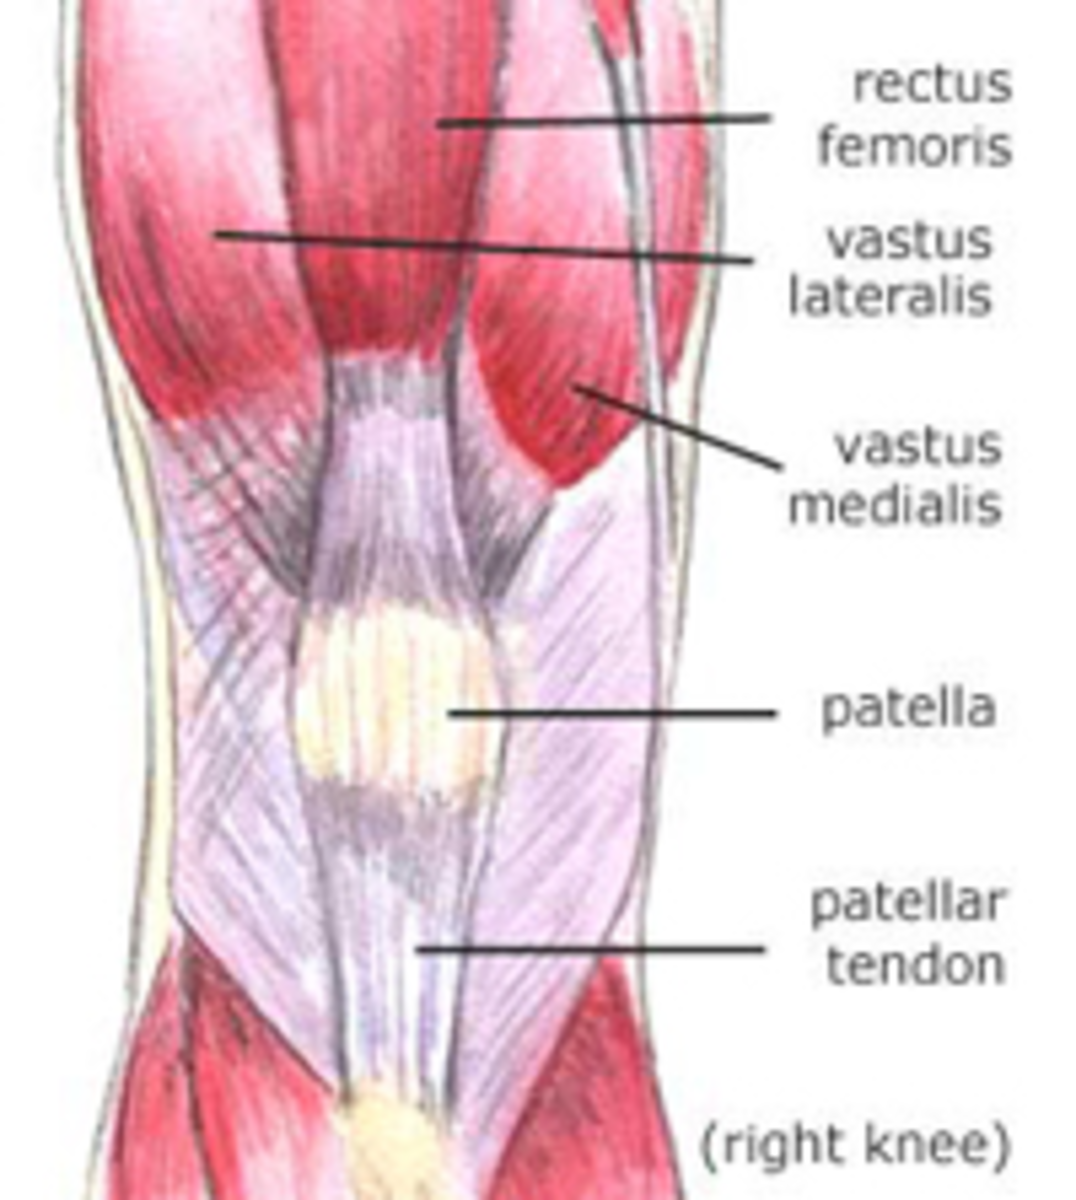 Fig. 3. Posterior (left) and Anterior (right) view of the knee muscles